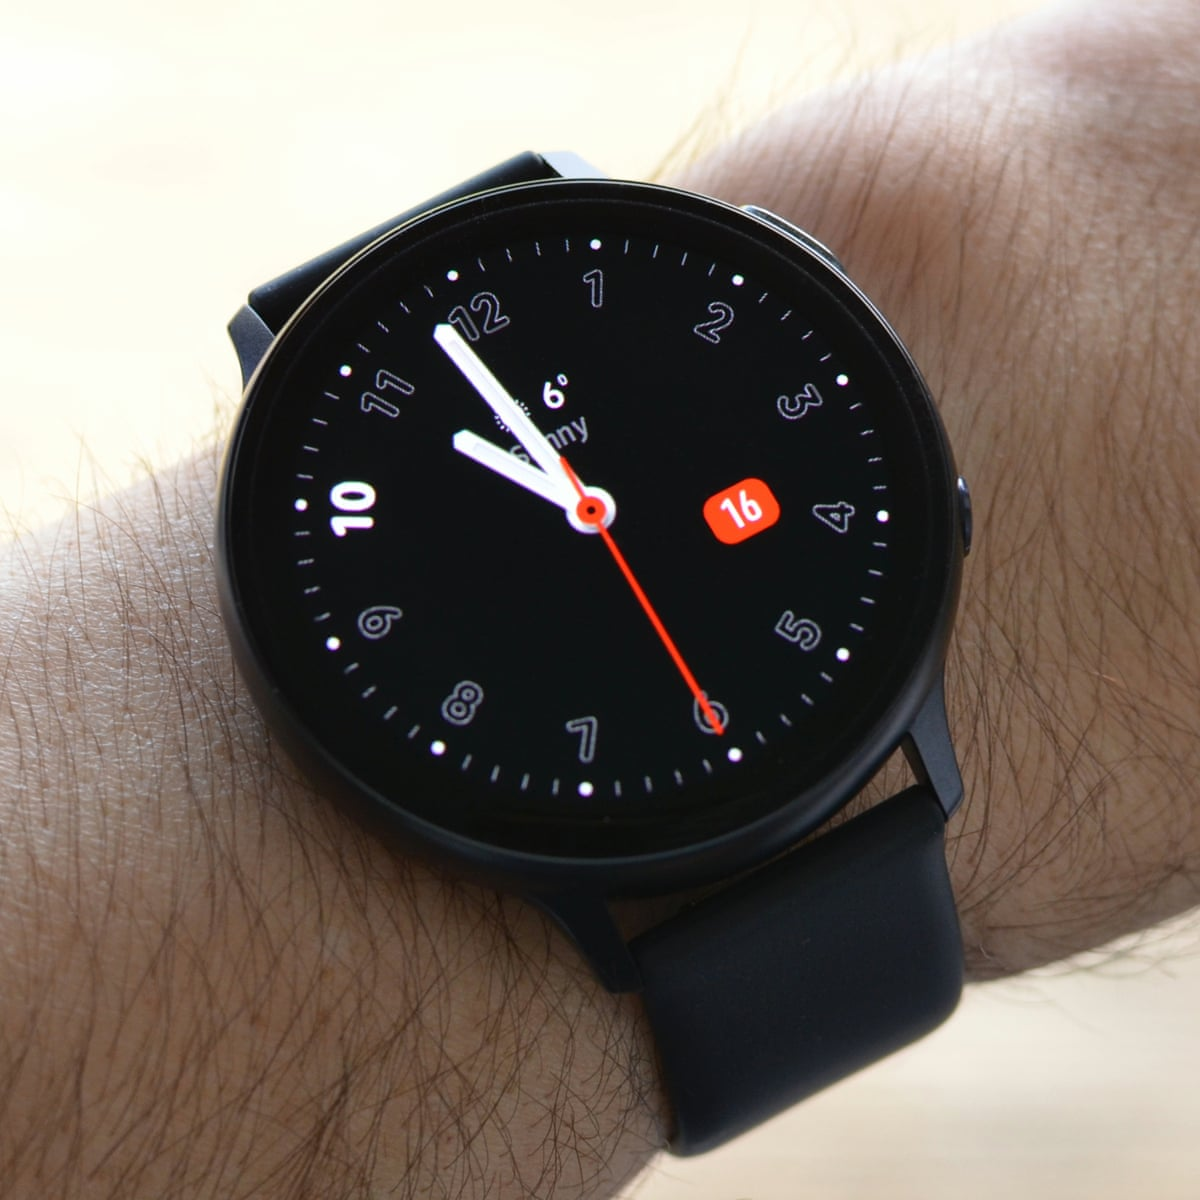 Samsung Galaxy Watch Active 2 Review The Best Smartwatch For Android Smartwatches The Guardian